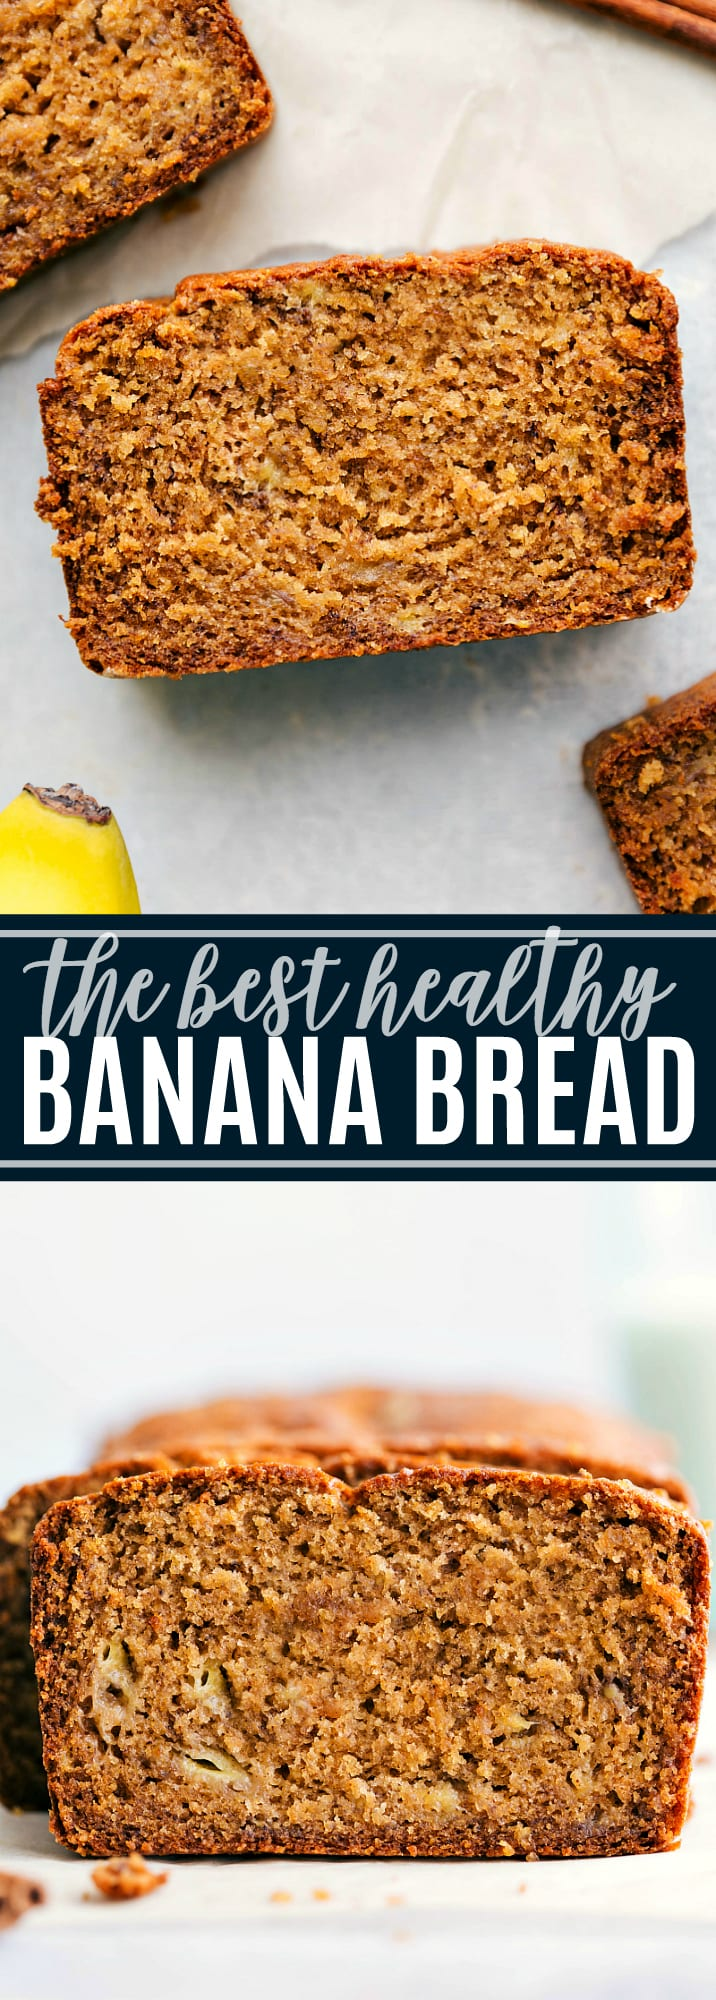 This is the best healthy banana bread is bursting with flavor and made with tons of healthy ingredient swaps. This healthy banana bread with yogurt can be made with or without chocolate chips and/or nuts! via chelseasmessyapron.com #healthy #banana #bread #easy #quick #calorie #kidfriendly #best #ever #recipe #greek #yogurt #delicious